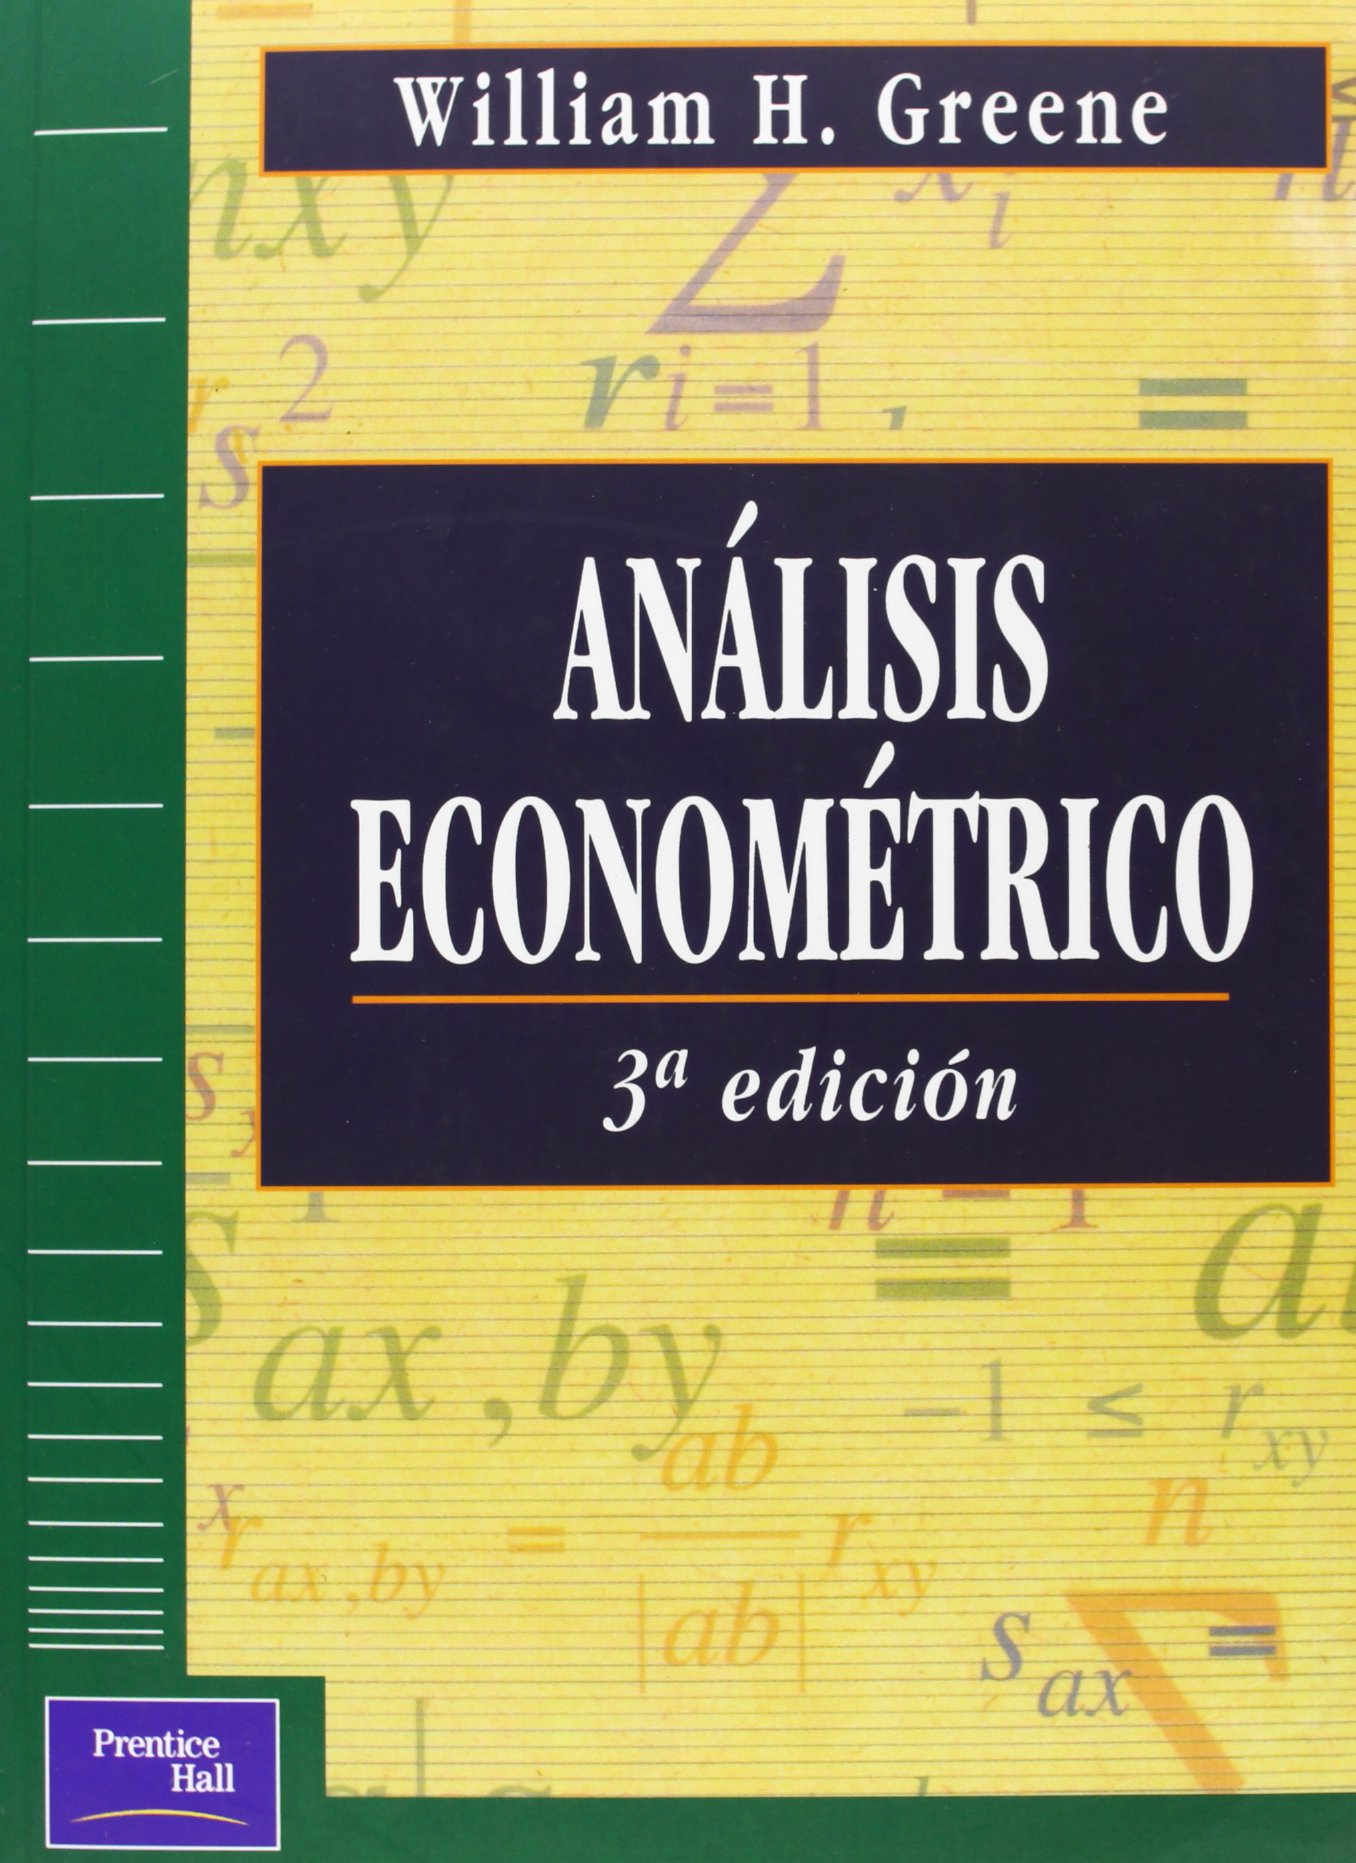 analisis econometrico william greene